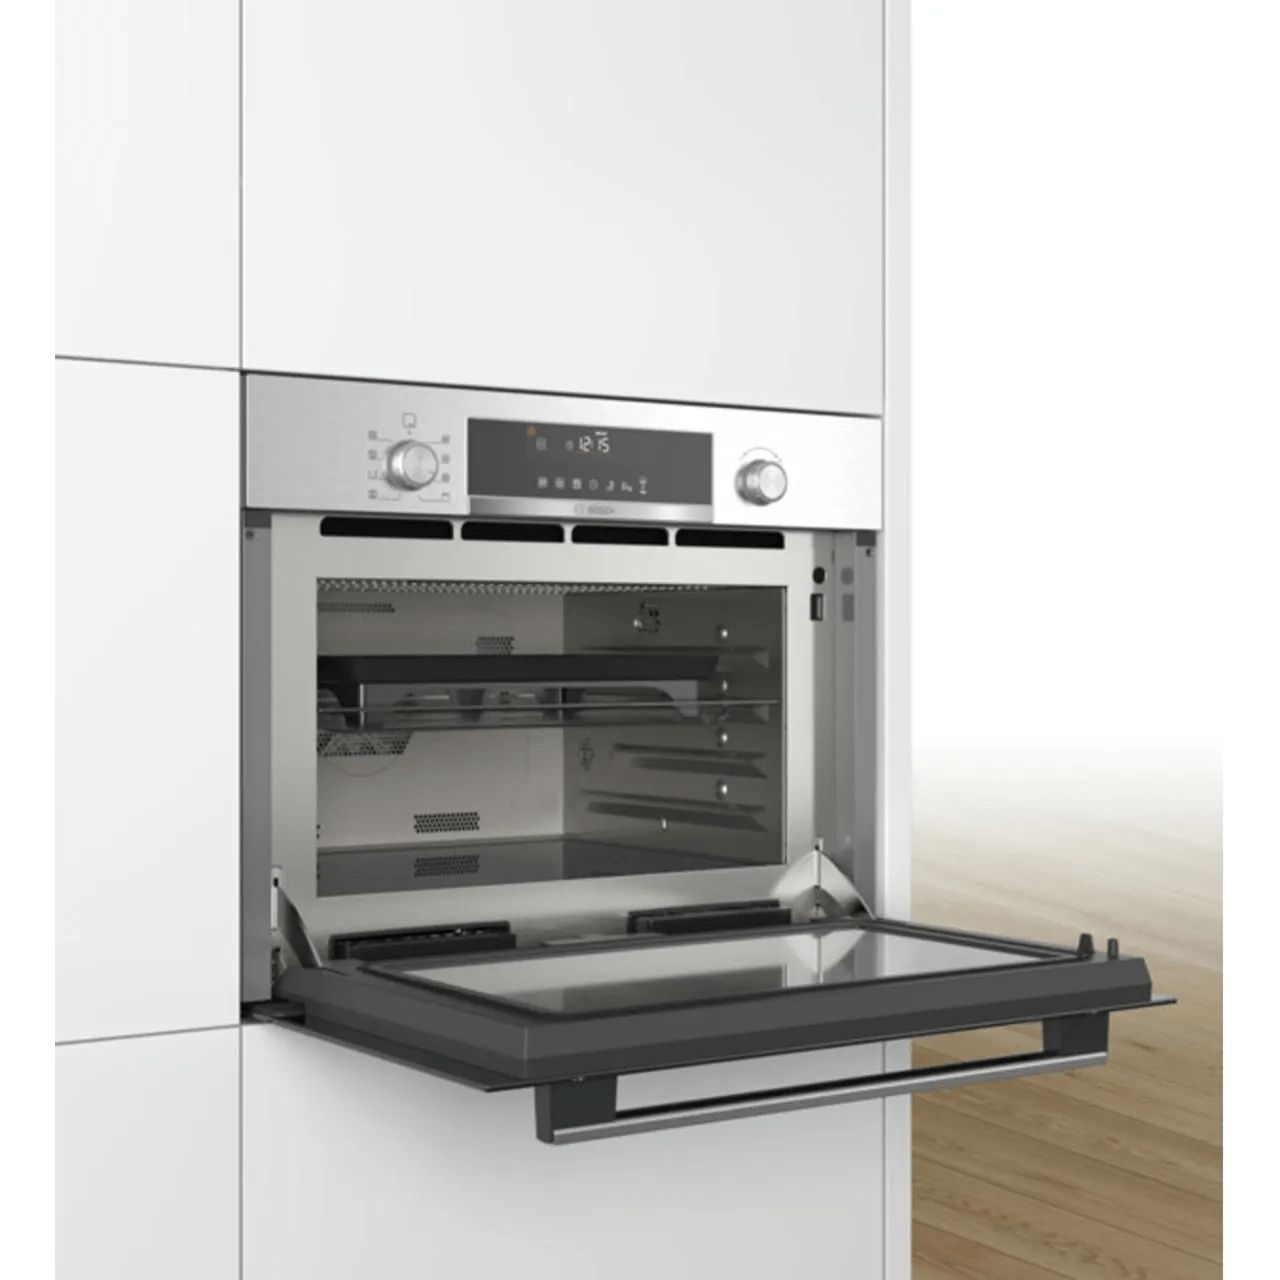 bosch serie 6 cpa565gs0b built in combination microwave oven stainless steel